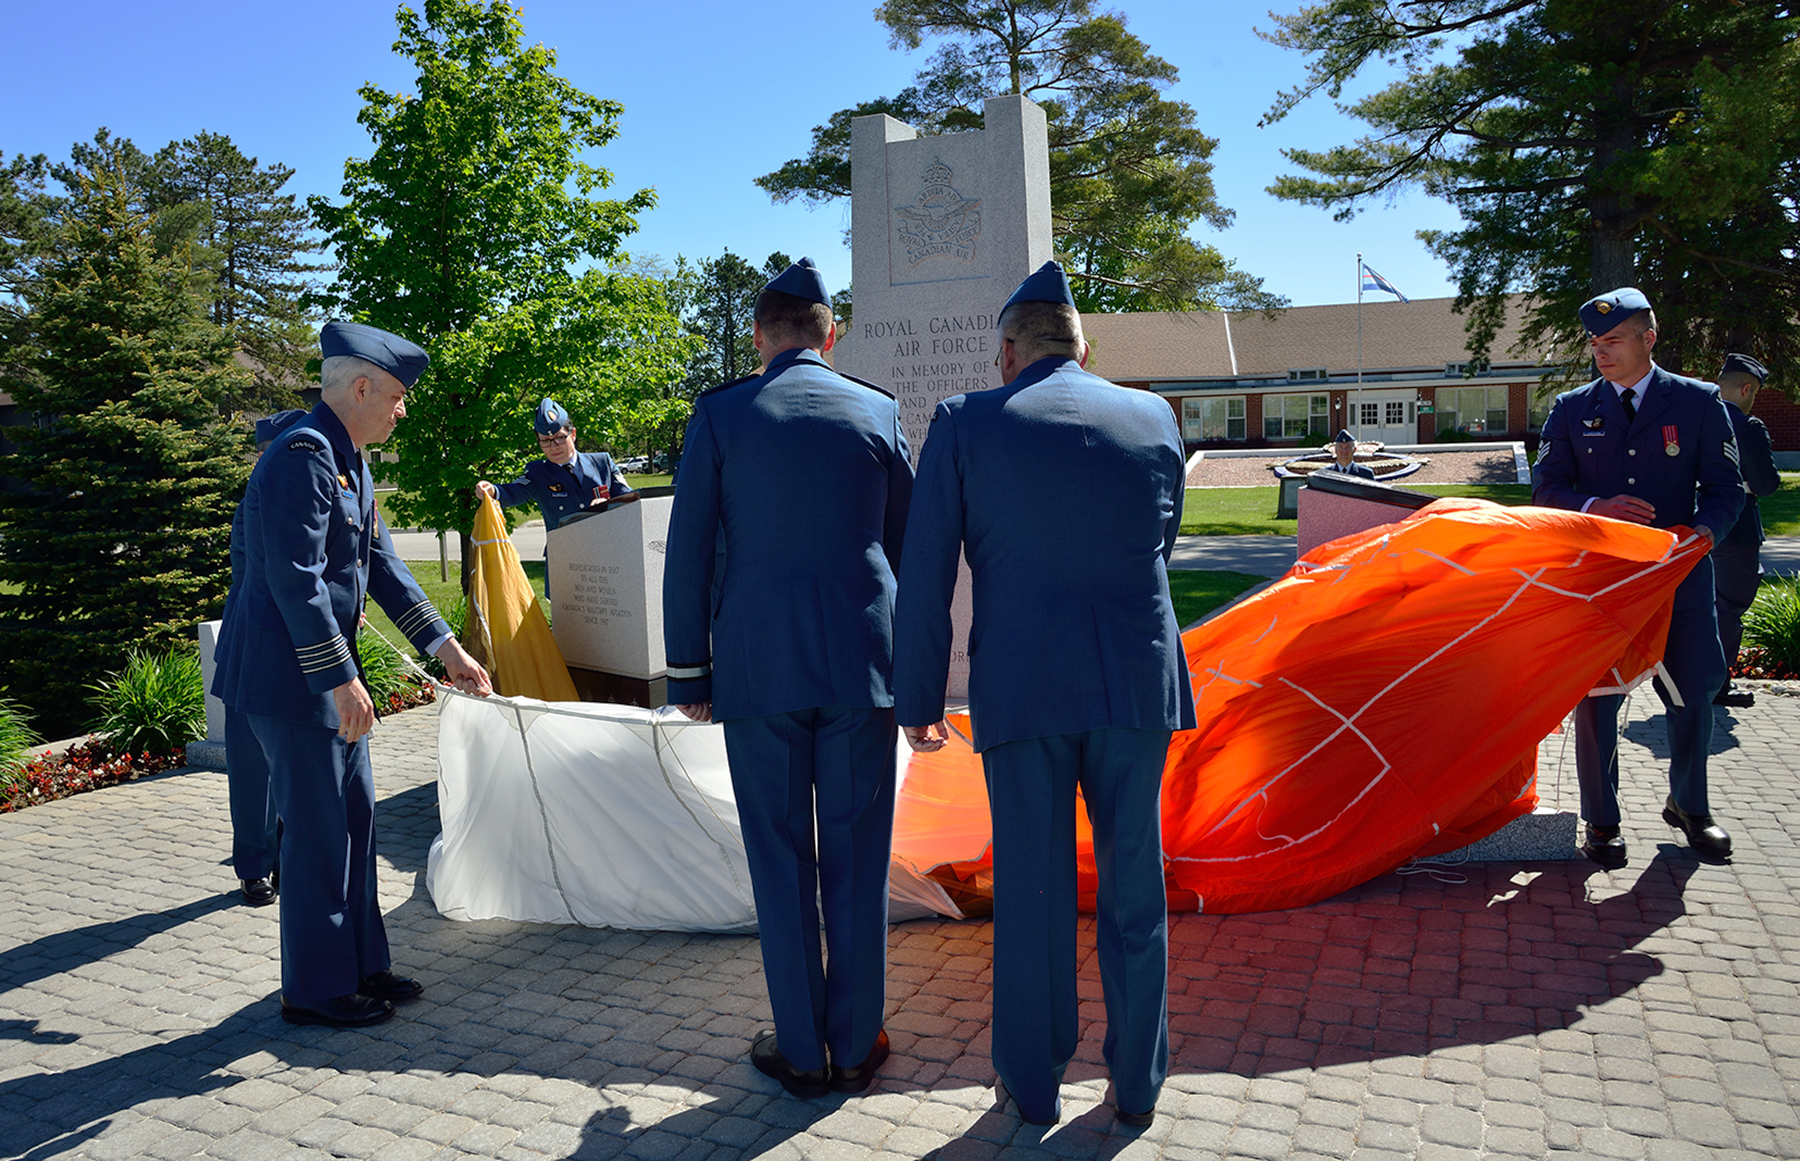 Lieutenant-Colonel Andrew Fleming (left), 16 Wing Borden, Ontario, Commander; Brigadier-General David Cochrane, 2 Canadian Air Division Commander; and Chief Warrant Officer Pierrot Jette, 2 Canadian Air Division Chief, remove the parachute from the newly rebuilt Royal Canadian Air Force Memorial on June 3, 2017, with Sergeant Patrick Lariviere (right), of the Royal Canadian Air Force Academy, assisting. PHOTO: Sergeant Christopher Bentley, BM01-2017-0174-45